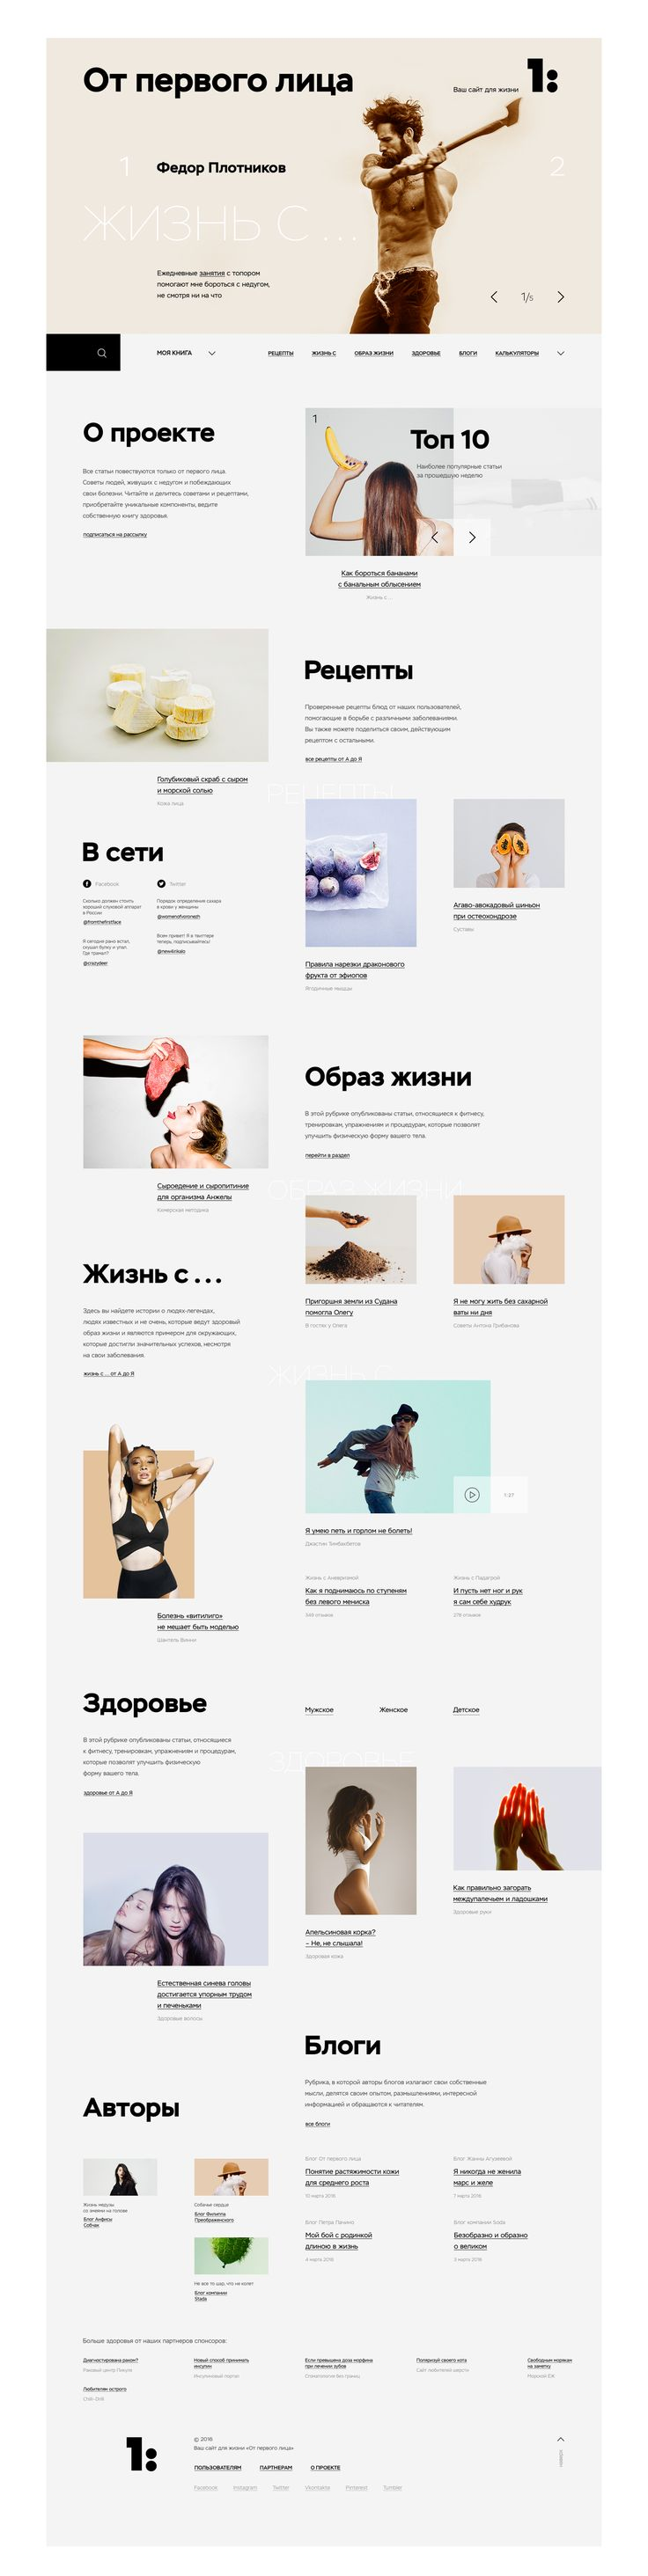 FromTheFirstFace on Behance